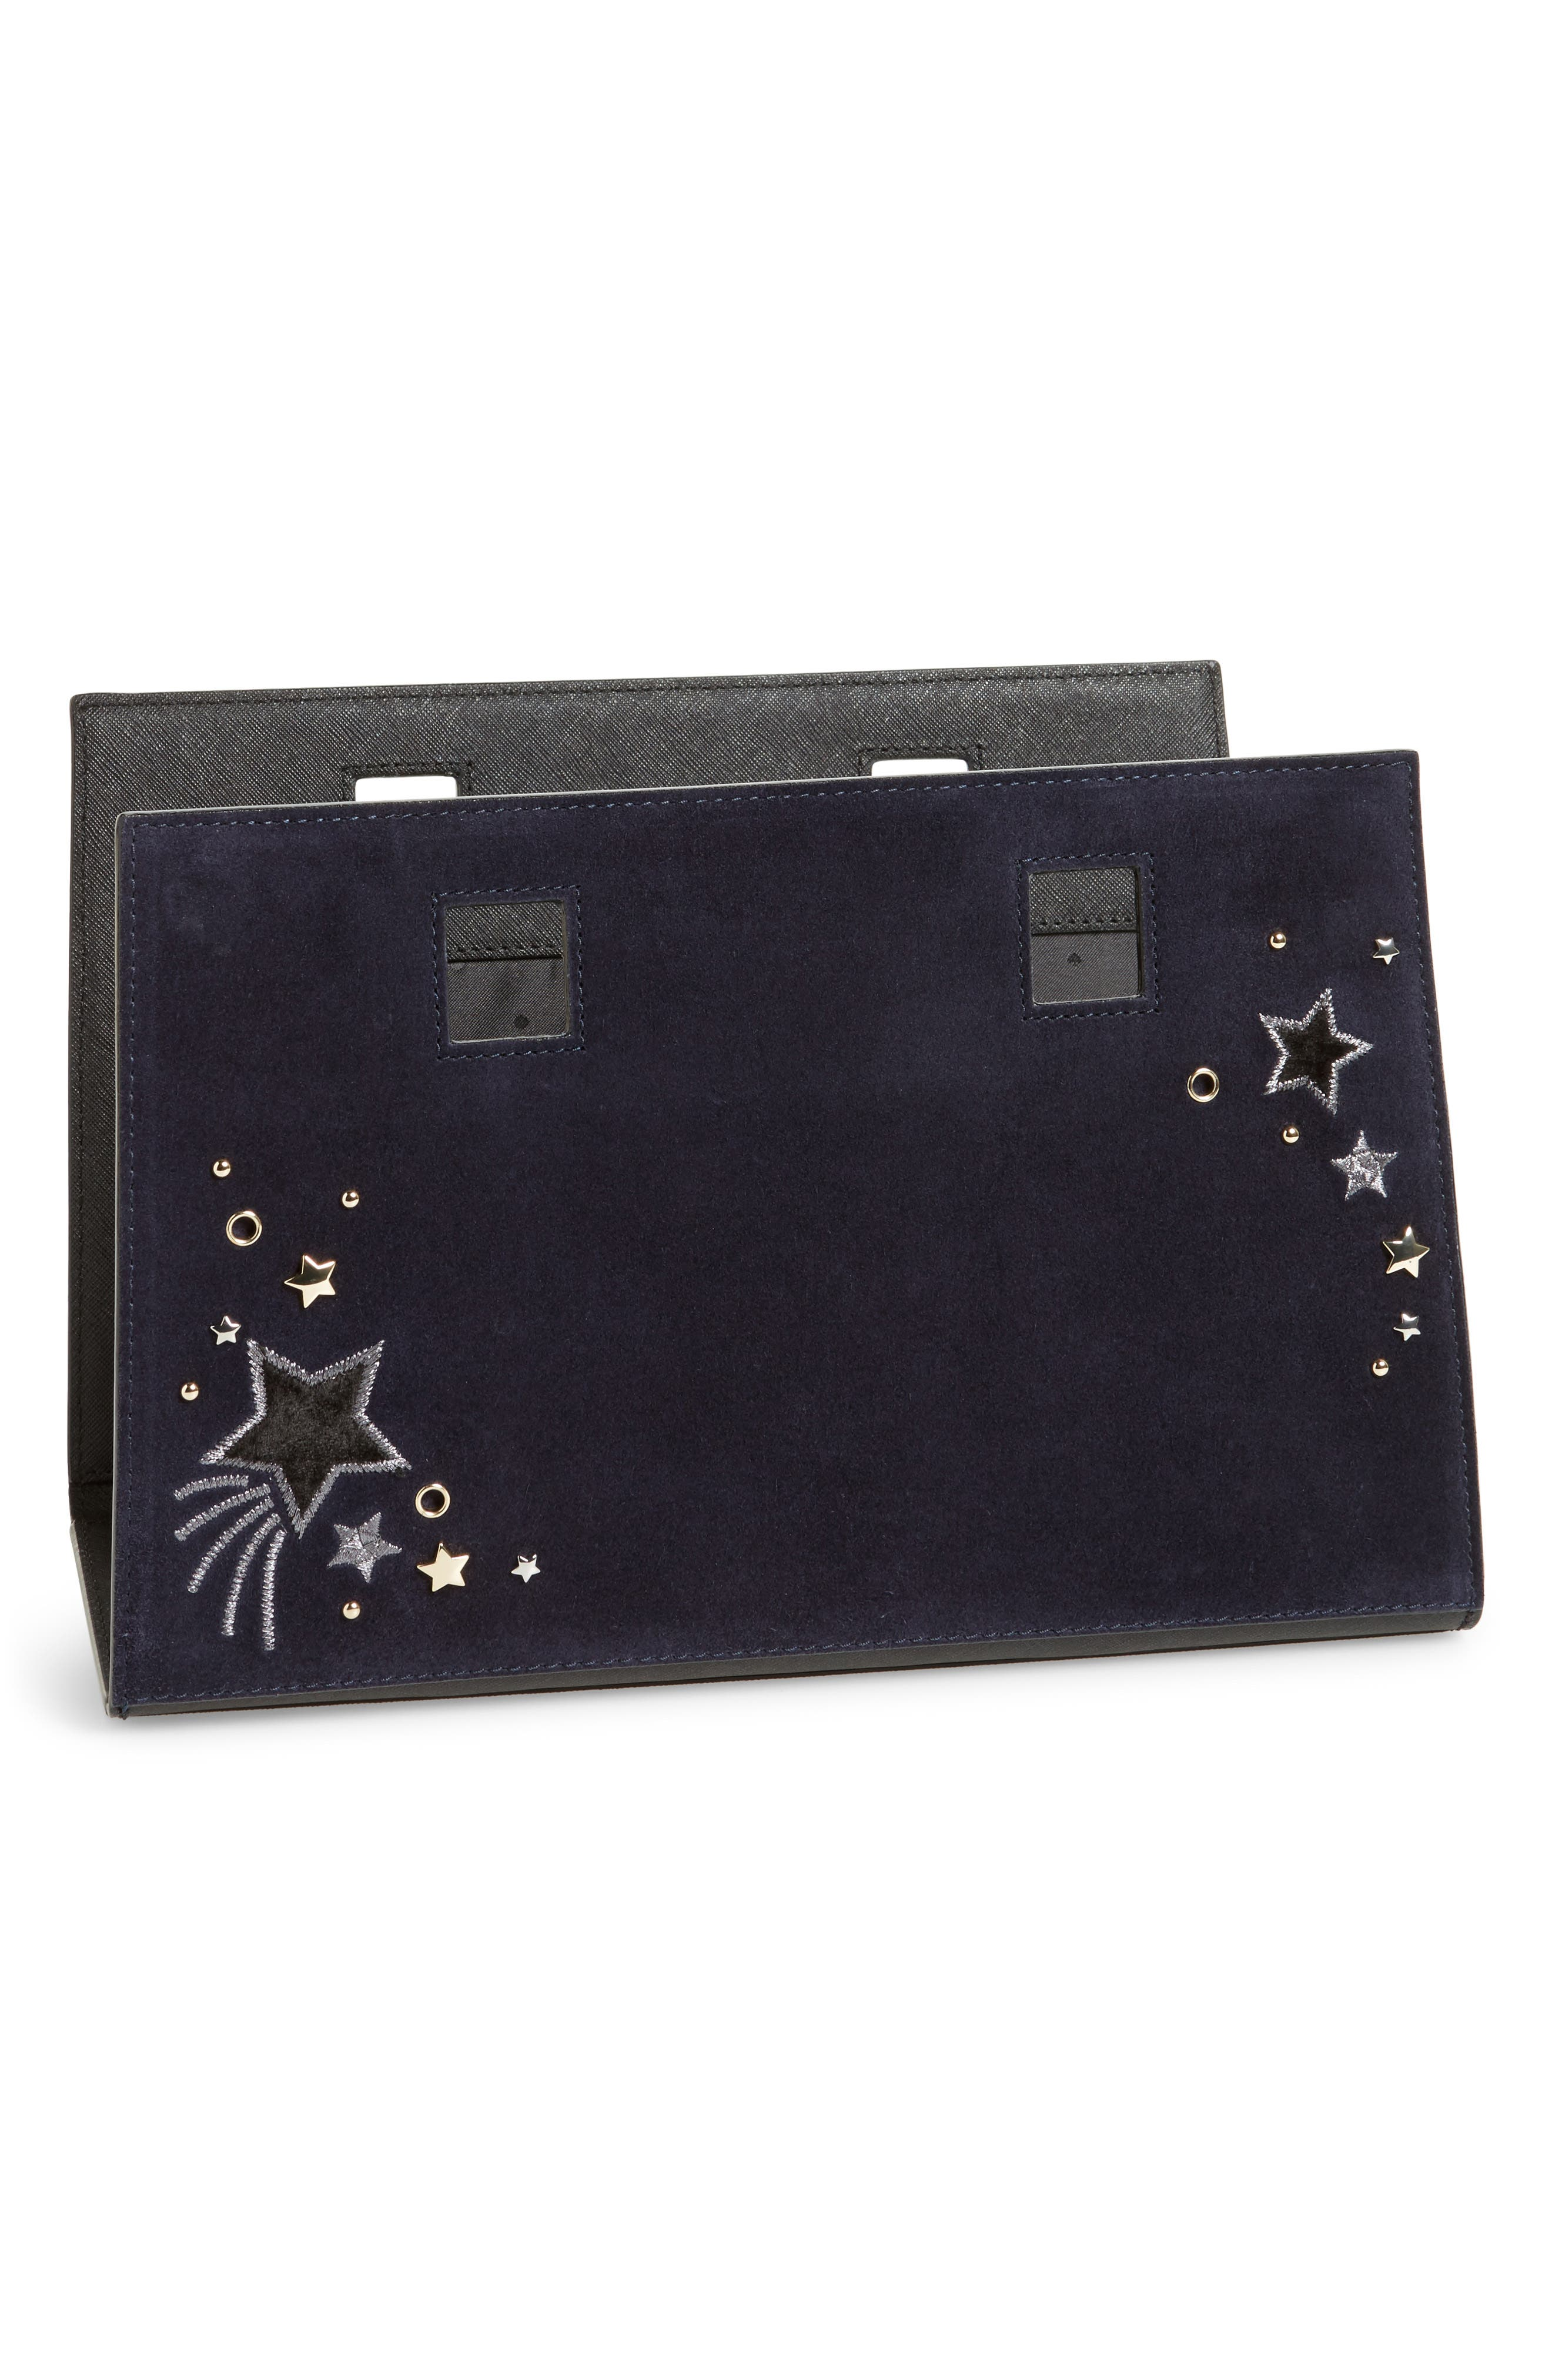 make it mine star embellished leather snap-on accent flap,                             Main thumbnail 1, color,                             400